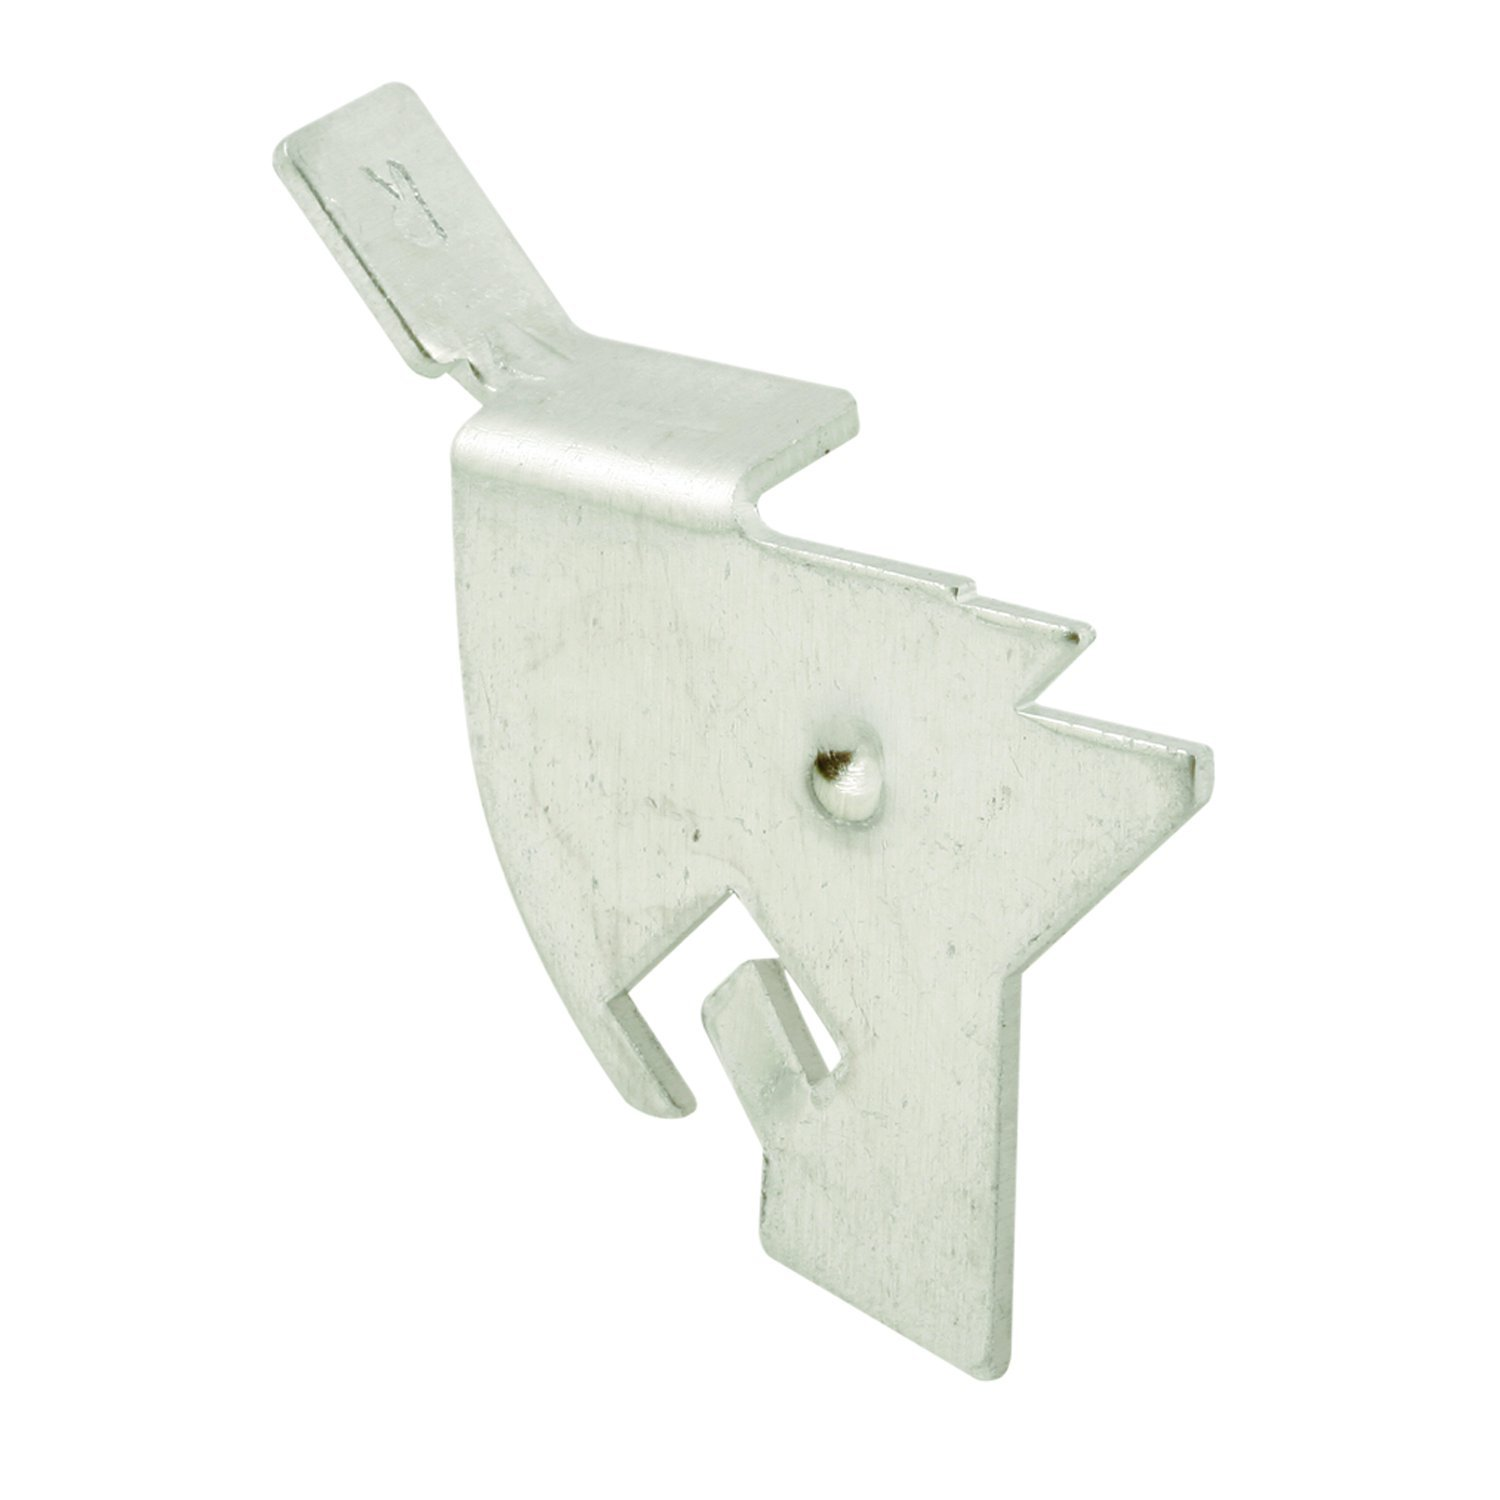 Prime Line Products PL 14672 Knife Latches Right Hand Mill Pack of 25